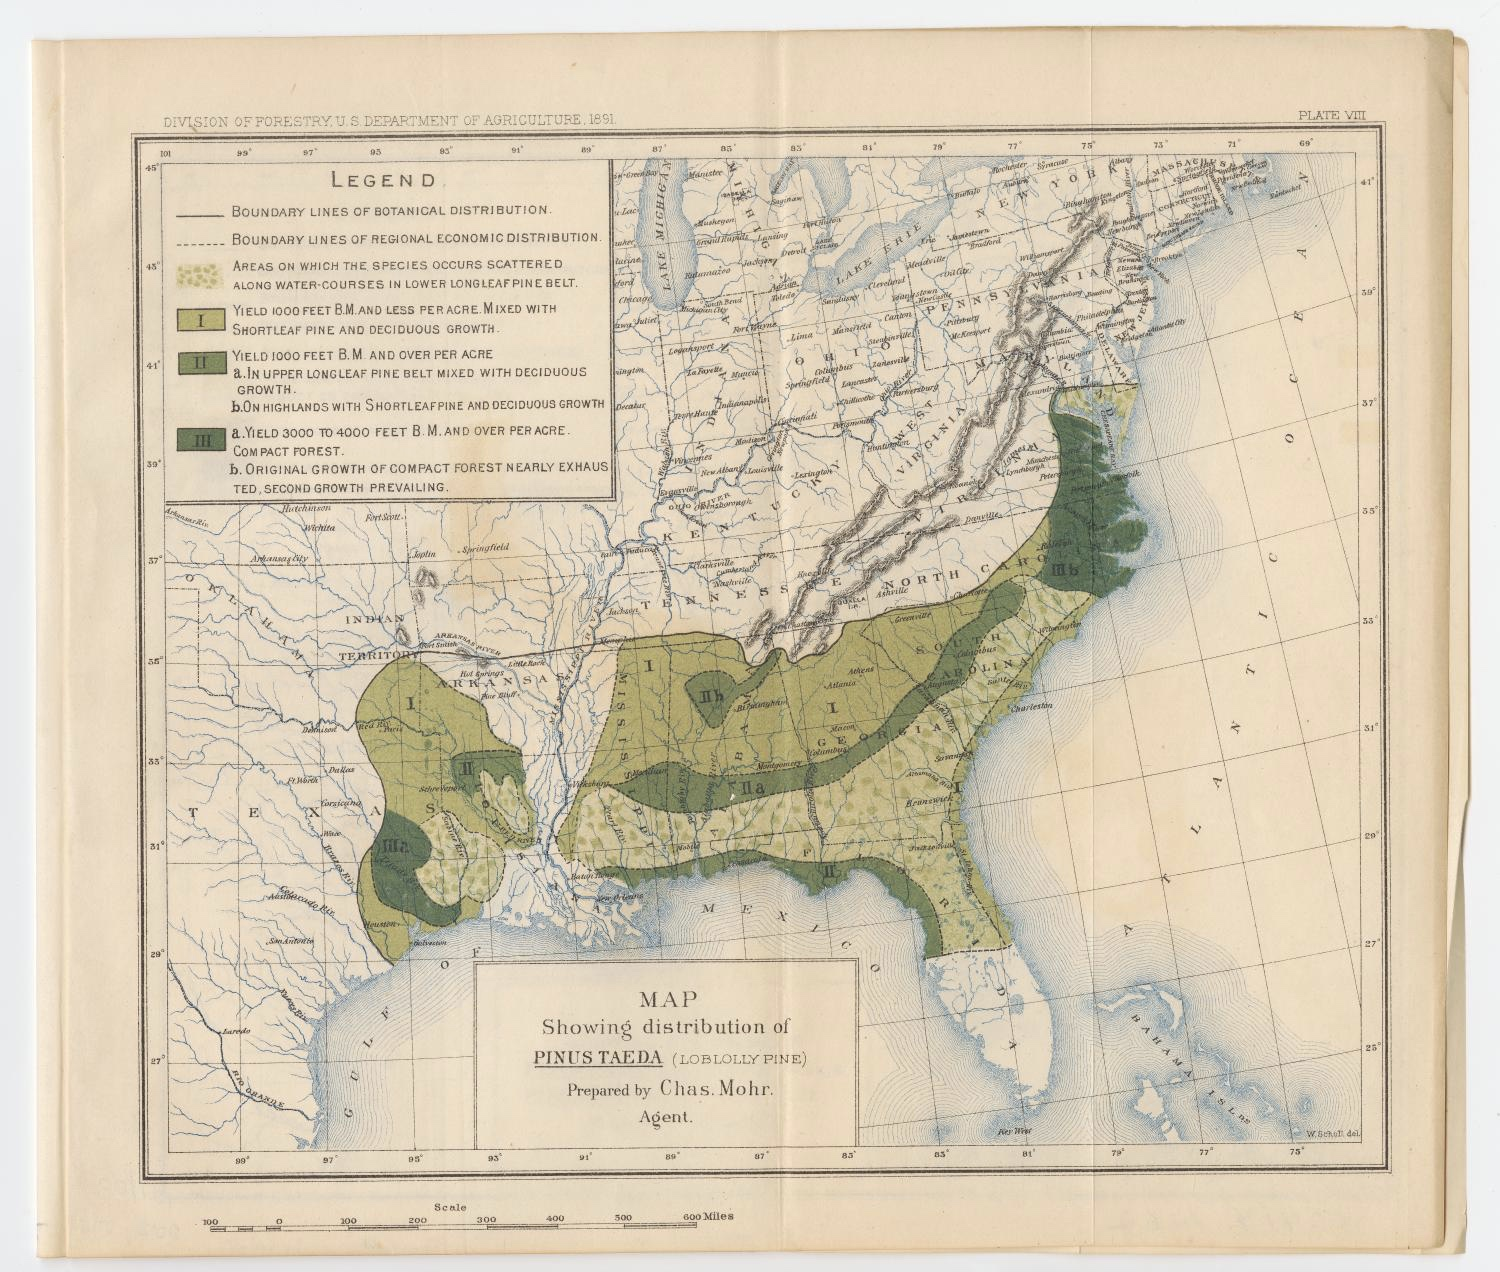 Map Showing Distribution of Pinus Taeda (Lobolly Pine) in 1891 from the Division of Forestry US Department of Agriculture